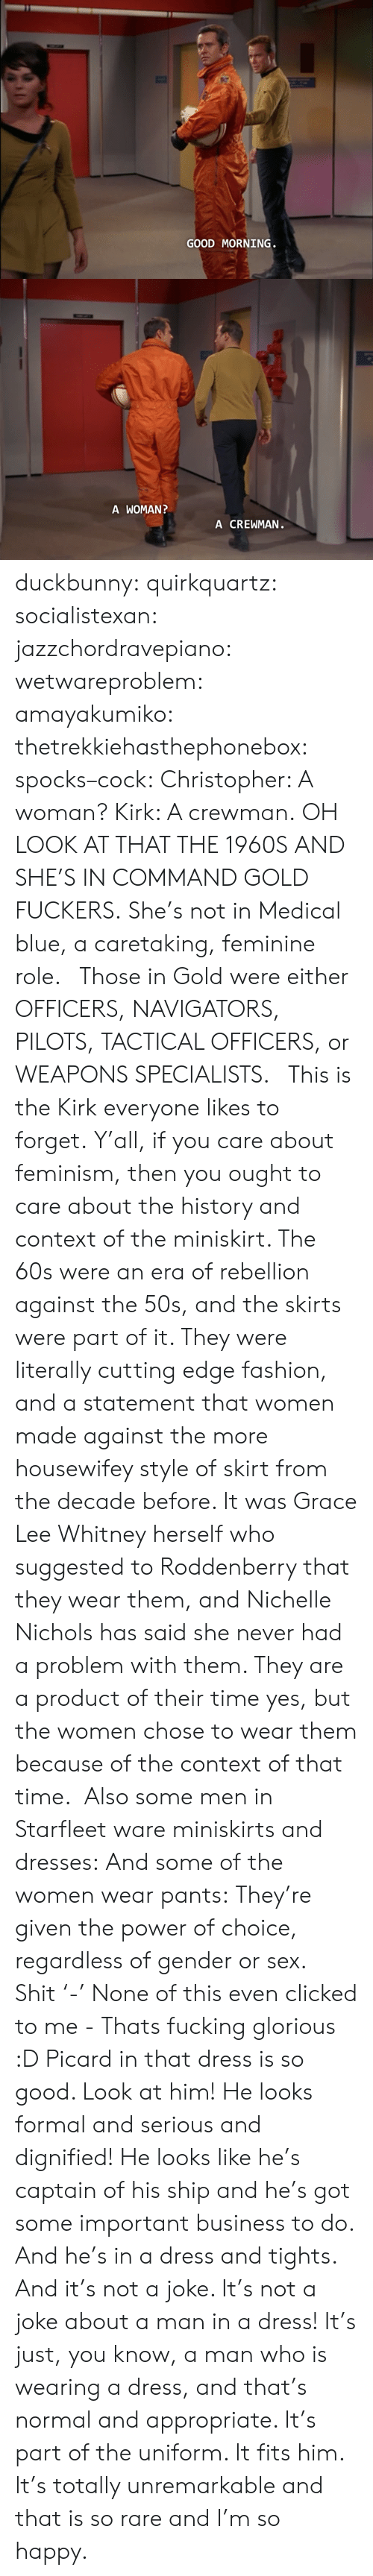 Feminism: GOOD MORNING   A WOMAN  A CREWMAN duckbunny:  quirkquartz:   socialistexan:  jazzchordravepiano:  wetwareproblem:  amayakumiko:  thetrekkiehasthephonebox:  spocks–cock:  Christopher: A woman? Kirk: A crewman.  OH LOOK AT THAT THE 1960S  AND SHE'S IN COMMAND GOLD FUCKERS. She's not in Medical blue, a caretaking, feminine role.   Those in Gold were either OFFICERS, NAVIGATORS, PILOTS, TACTICAL OFFICERS, or WEAPONS SPECIALISTS.    This is the Kirk everyone likes to forget.  Y'all, if you care about feminism, then you ought to care about the history and context of the miniskirt. The 60s were an era of rebellion against the 50s, and the skirts were part of it. They were literally cutting edge fashion, and a statement that women made against the more housewifey style of skirt from the decade before. It was Grace Lee Whitney herself who suggested to Roddenberry that they wear them, and Nichelle Nichols has said she never had a problem with them. They are a product of their time yes, but the women chose to wear them because of the context of that time.   Also some men in Starfleet ware miniskirts and dresses: And some of the women wear pants: They're given the power of choice, regardless of gender or sex.   Shit '-' None of this even clicked to me - Thats fucking glorious :D   Picard in that dress is so good. Look at him! He looks formal and serious and dignified! He looks like he's captain of his ship and he's got some important business to do. And he's in a dress and tights. And it's not a joke. It's not a joke about a man in a dress! It's just, you know, a man who is wearing a dress, and that's normal and appropriate. It's part of the uniform. It fits him. It's totally unremarkable and that is so rare and I'm so happy.